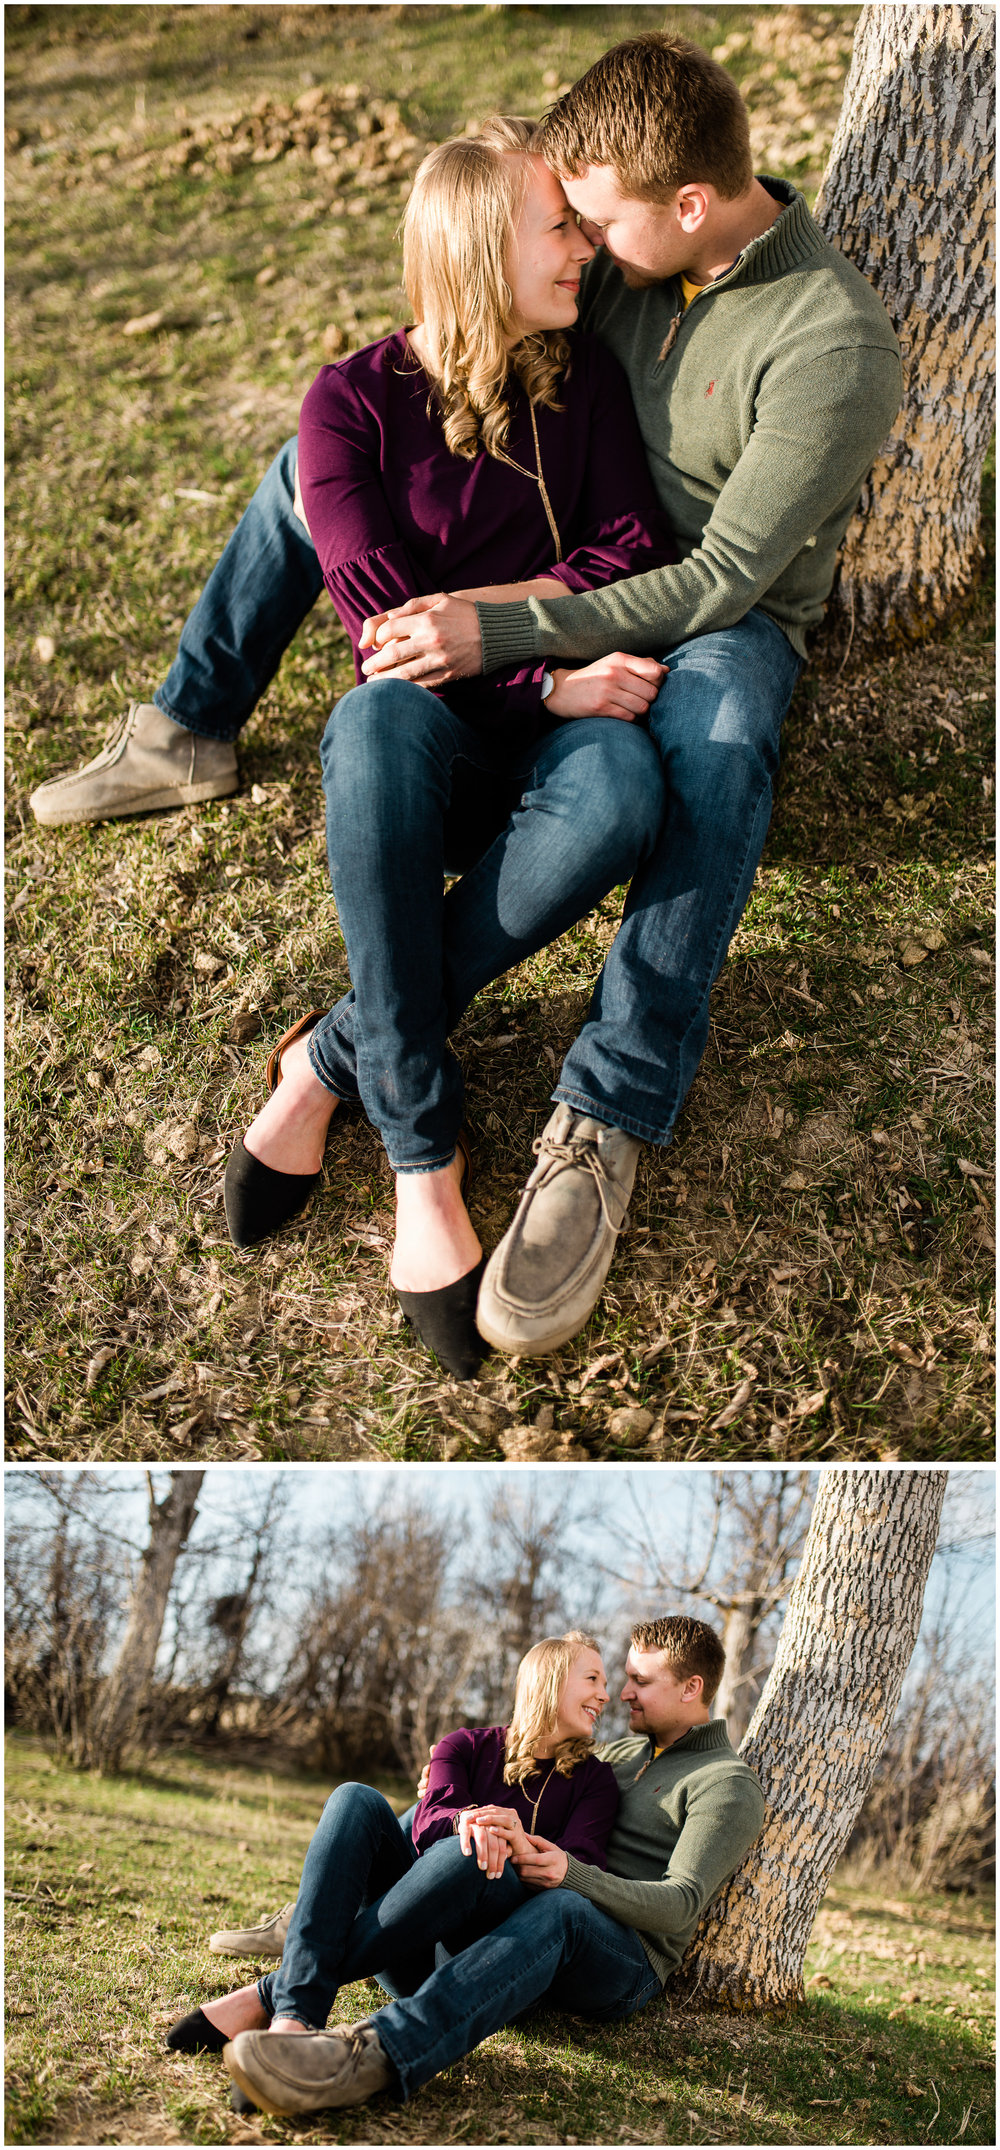 Duane + Brittney Engagement Session. Sagebrush Studio Photography. Shelby, MT.